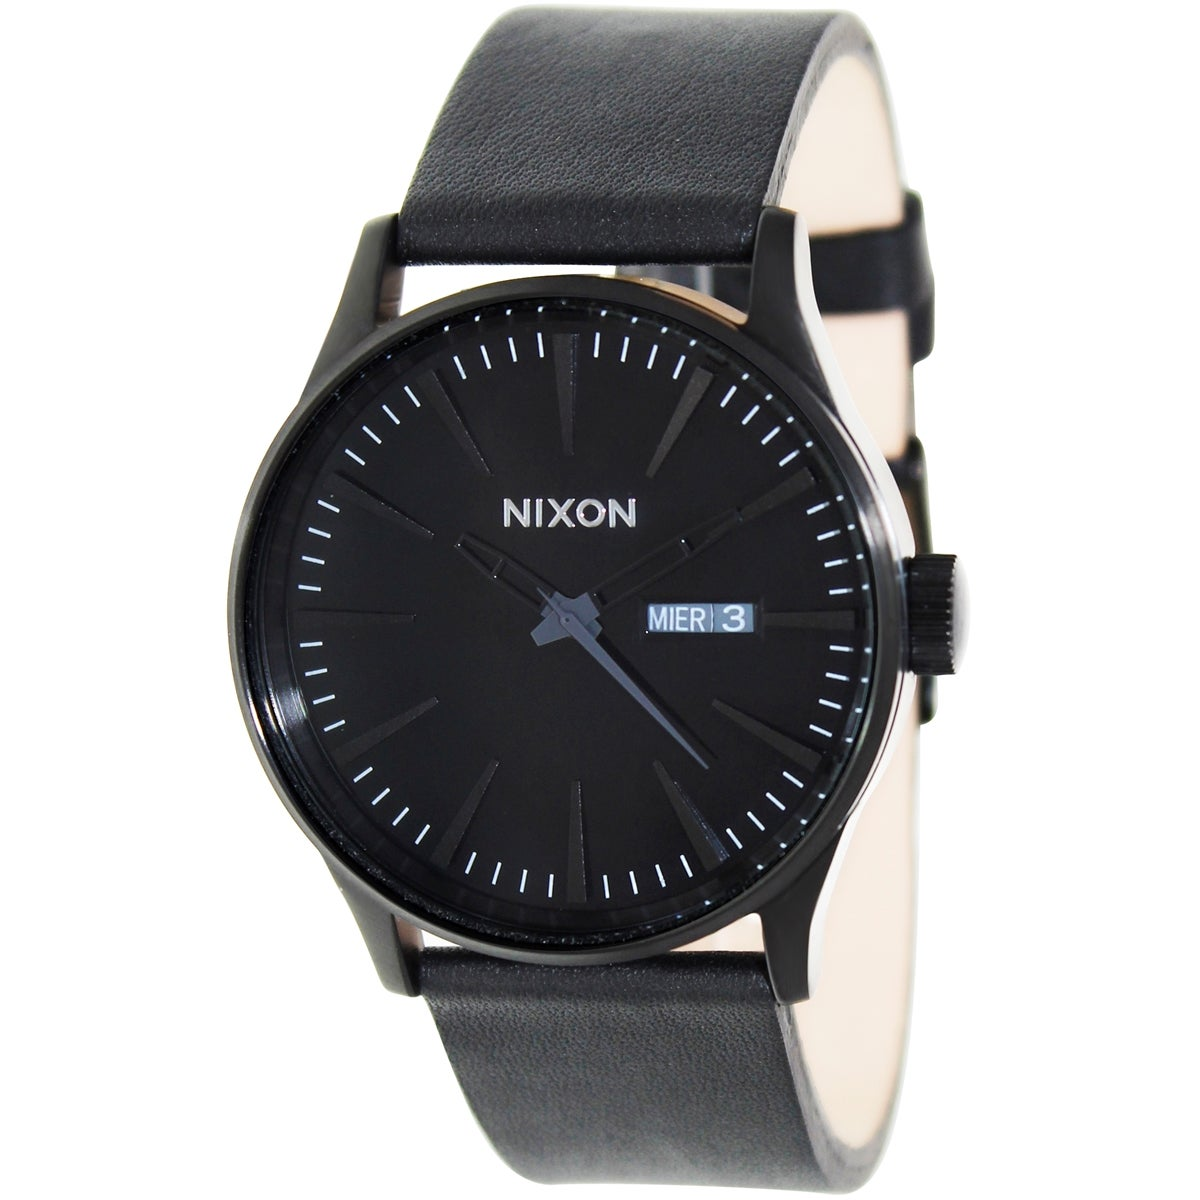 Nixon Men's Sentry Leather A105001 Black Leather Quartz Watch with Black Dial